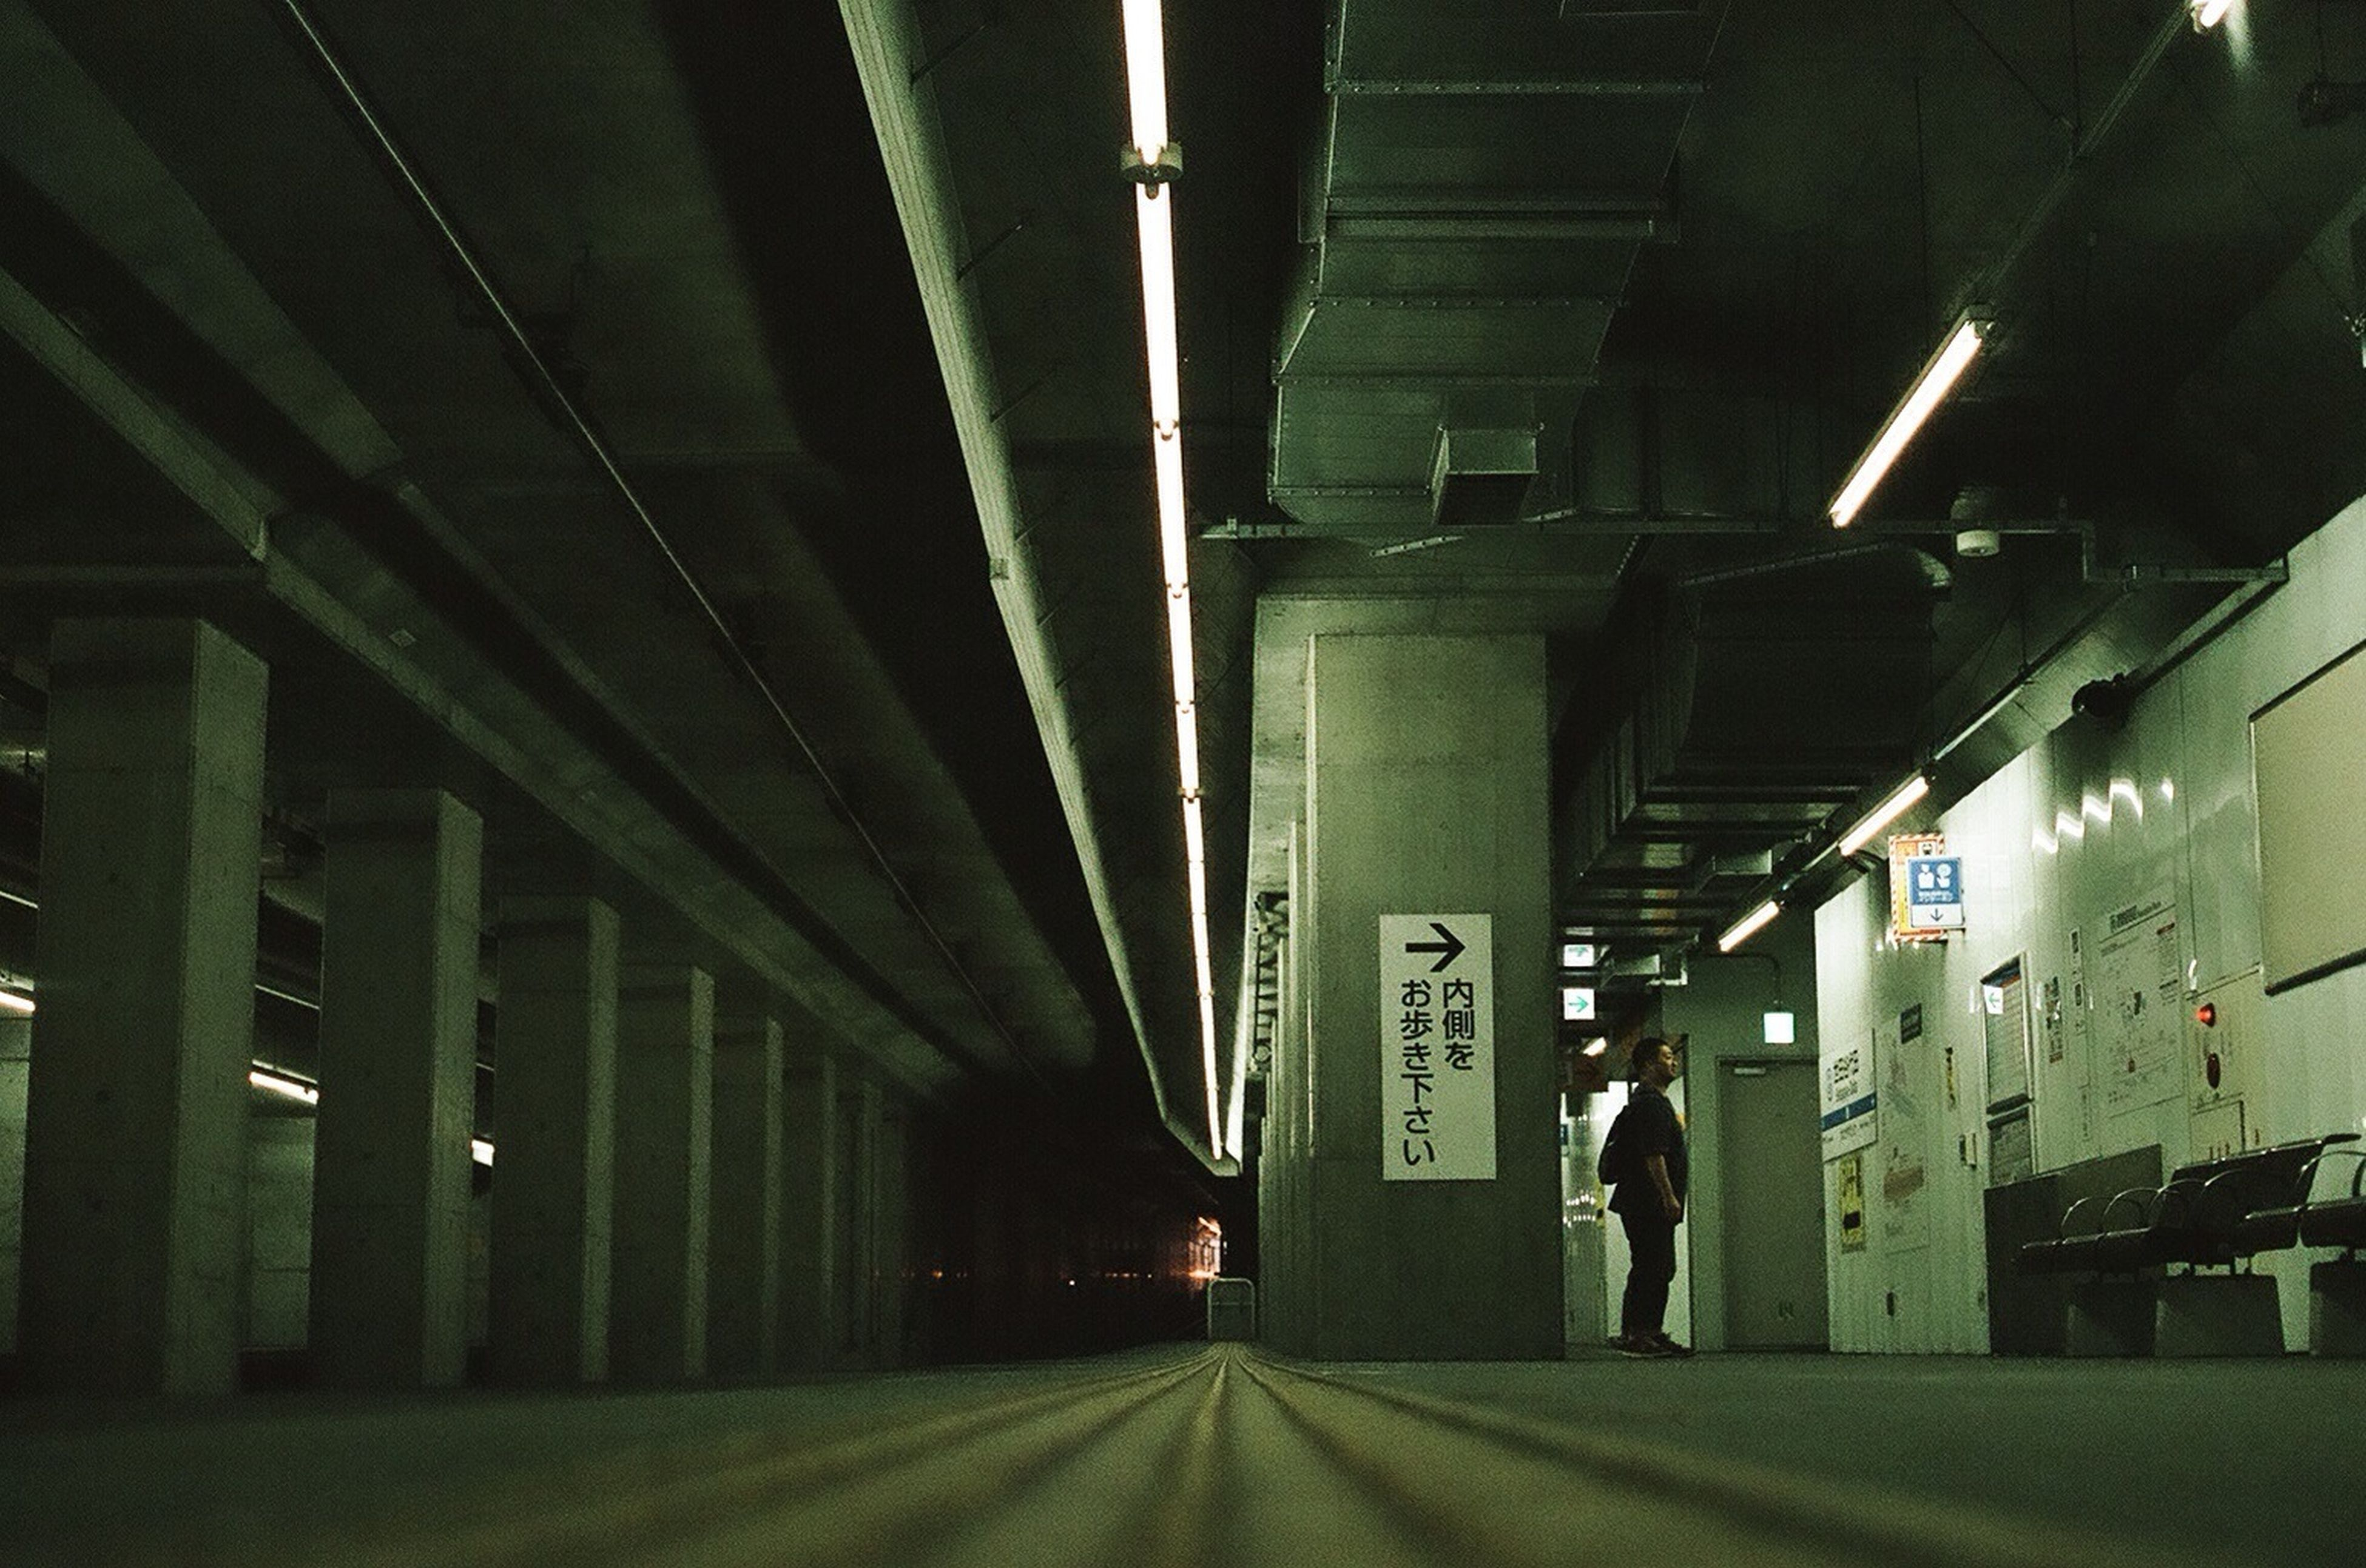 transportation, illuminated, indoors, rail transportation, public transportation, railroad track, railroad station platform, railroad station, night, the way forward, ceiling, train - vehicle, built structure, diminishing perspective, subway, tunnel, architecture, lighting equipment, mode of transport, subway station